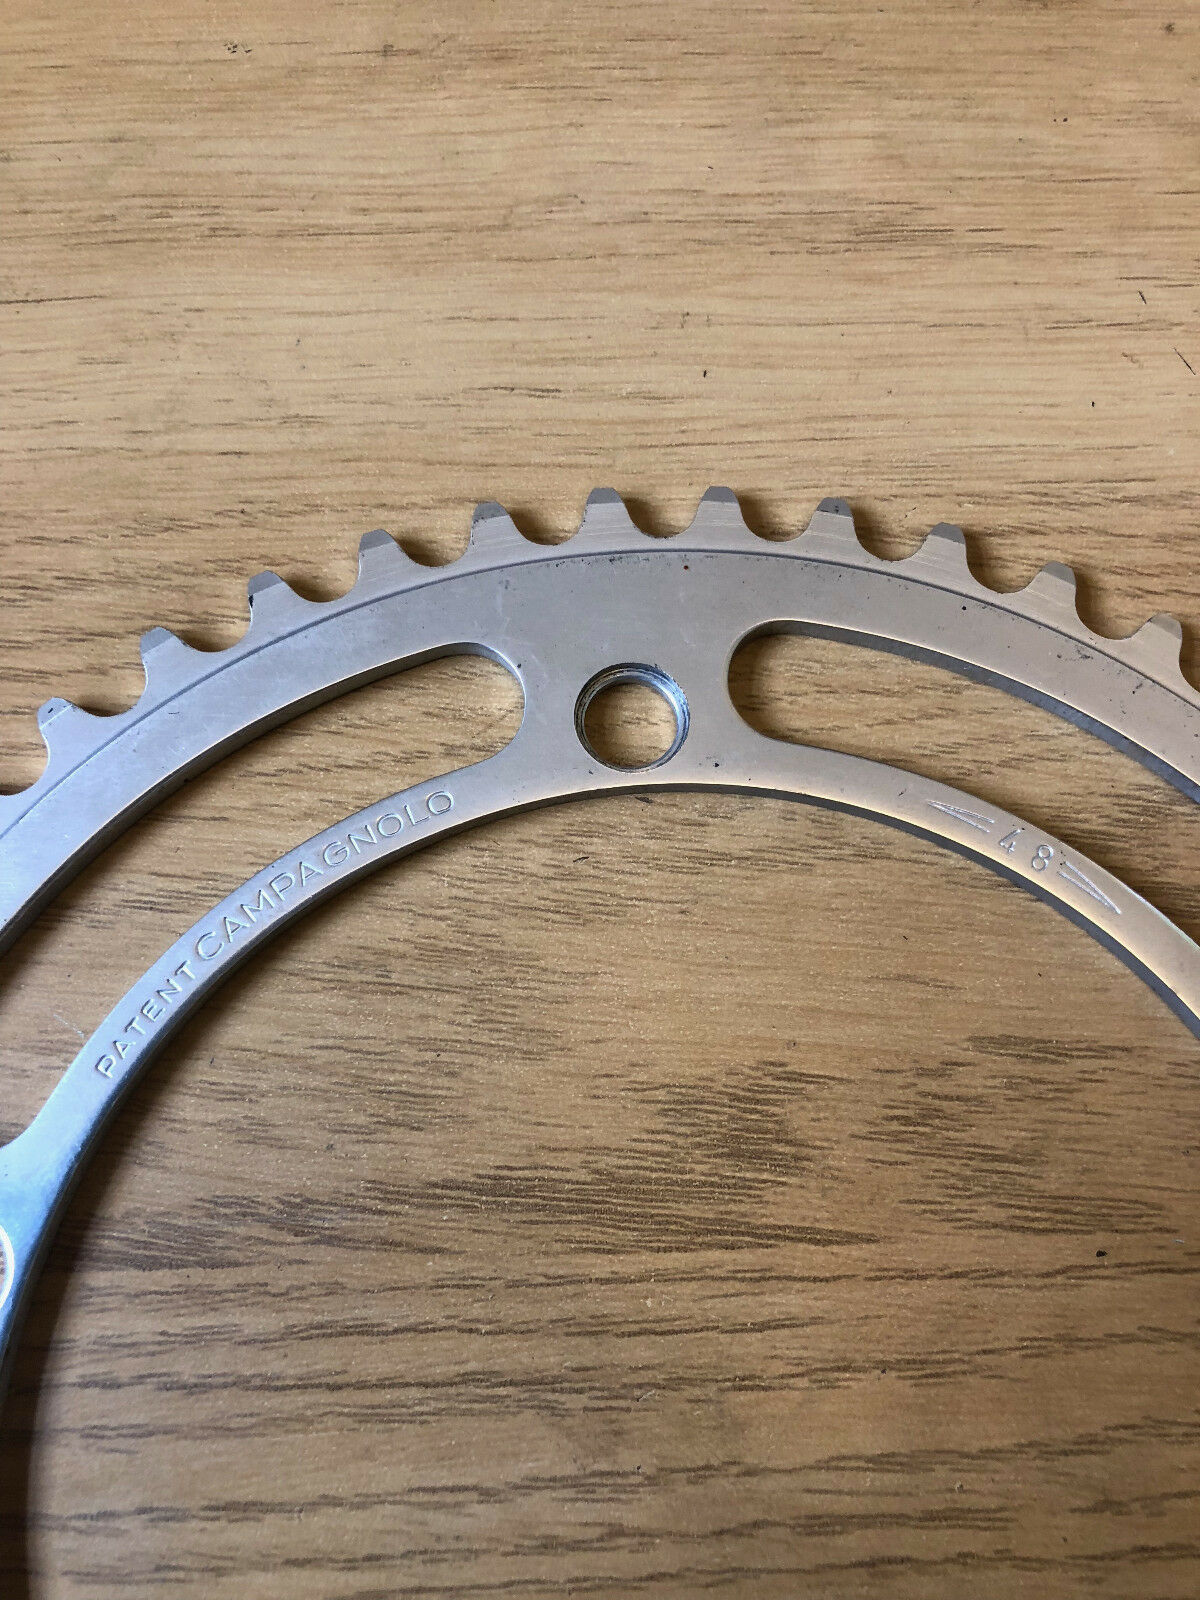 NOS Campagnolo Record (Nuovo) Chainring 48t 144bcd Road 1970s 80s